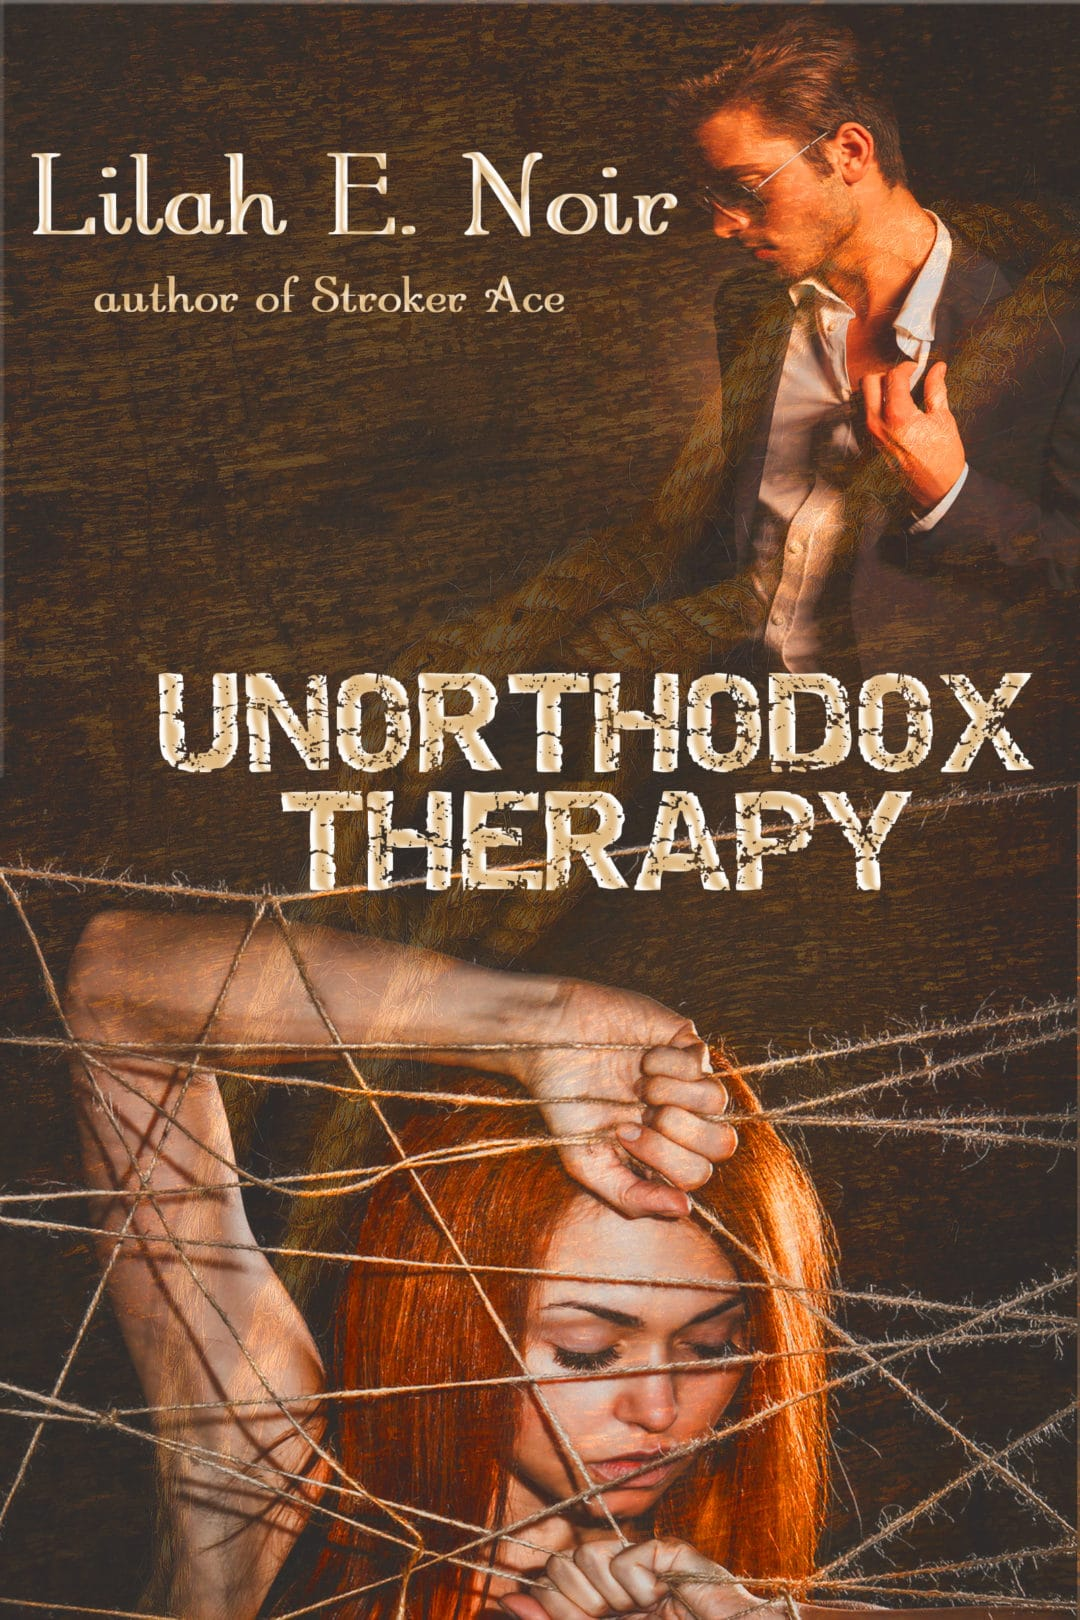 Guest Post - UNORTHODOX THERAPY by Lilah E. Noir